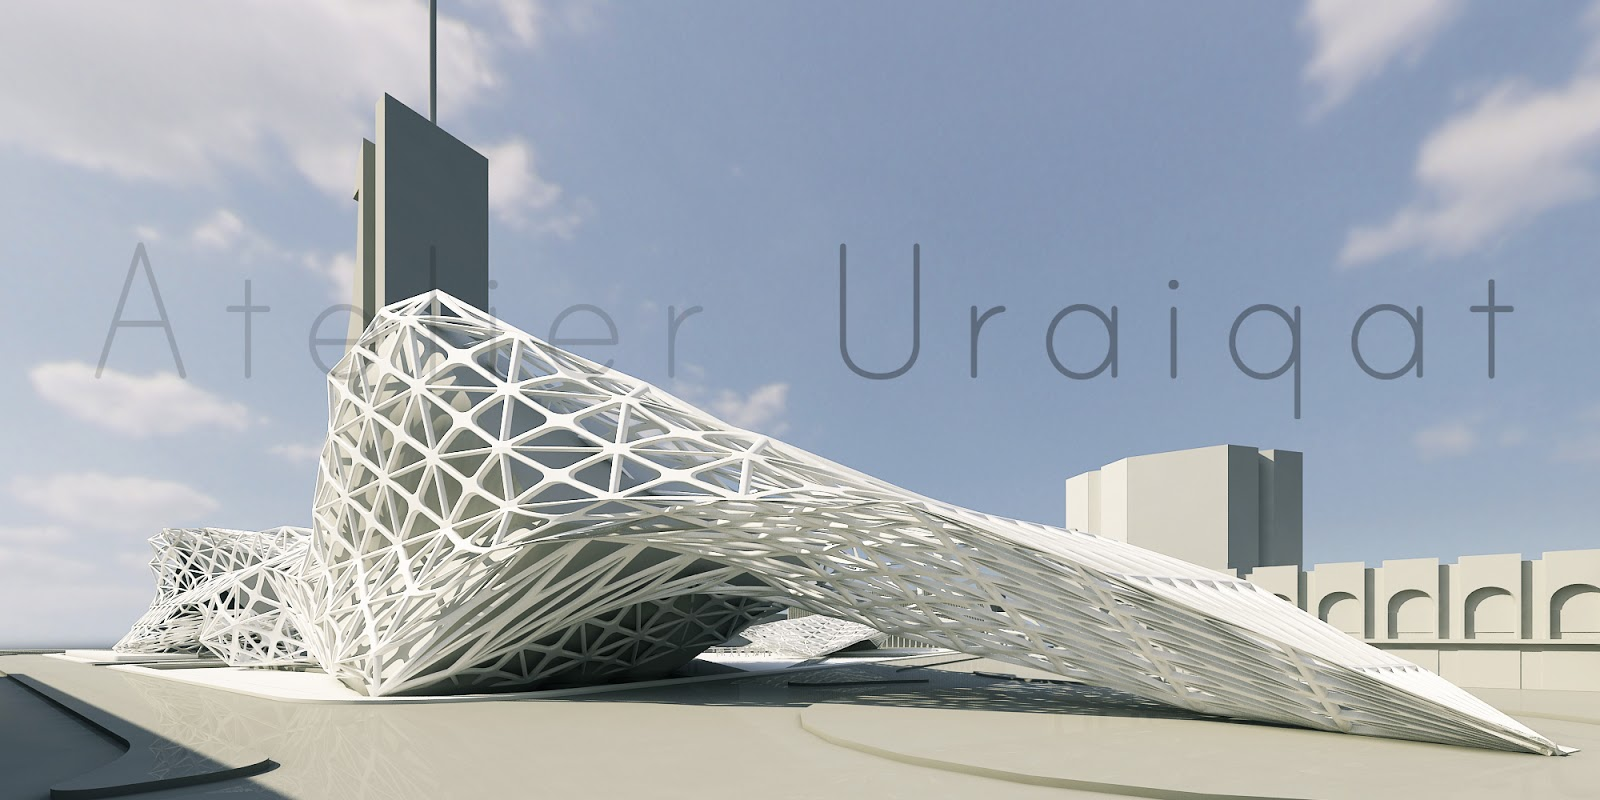 Atelier uraiqat cyborg architects the effect of digital for Architecture and design